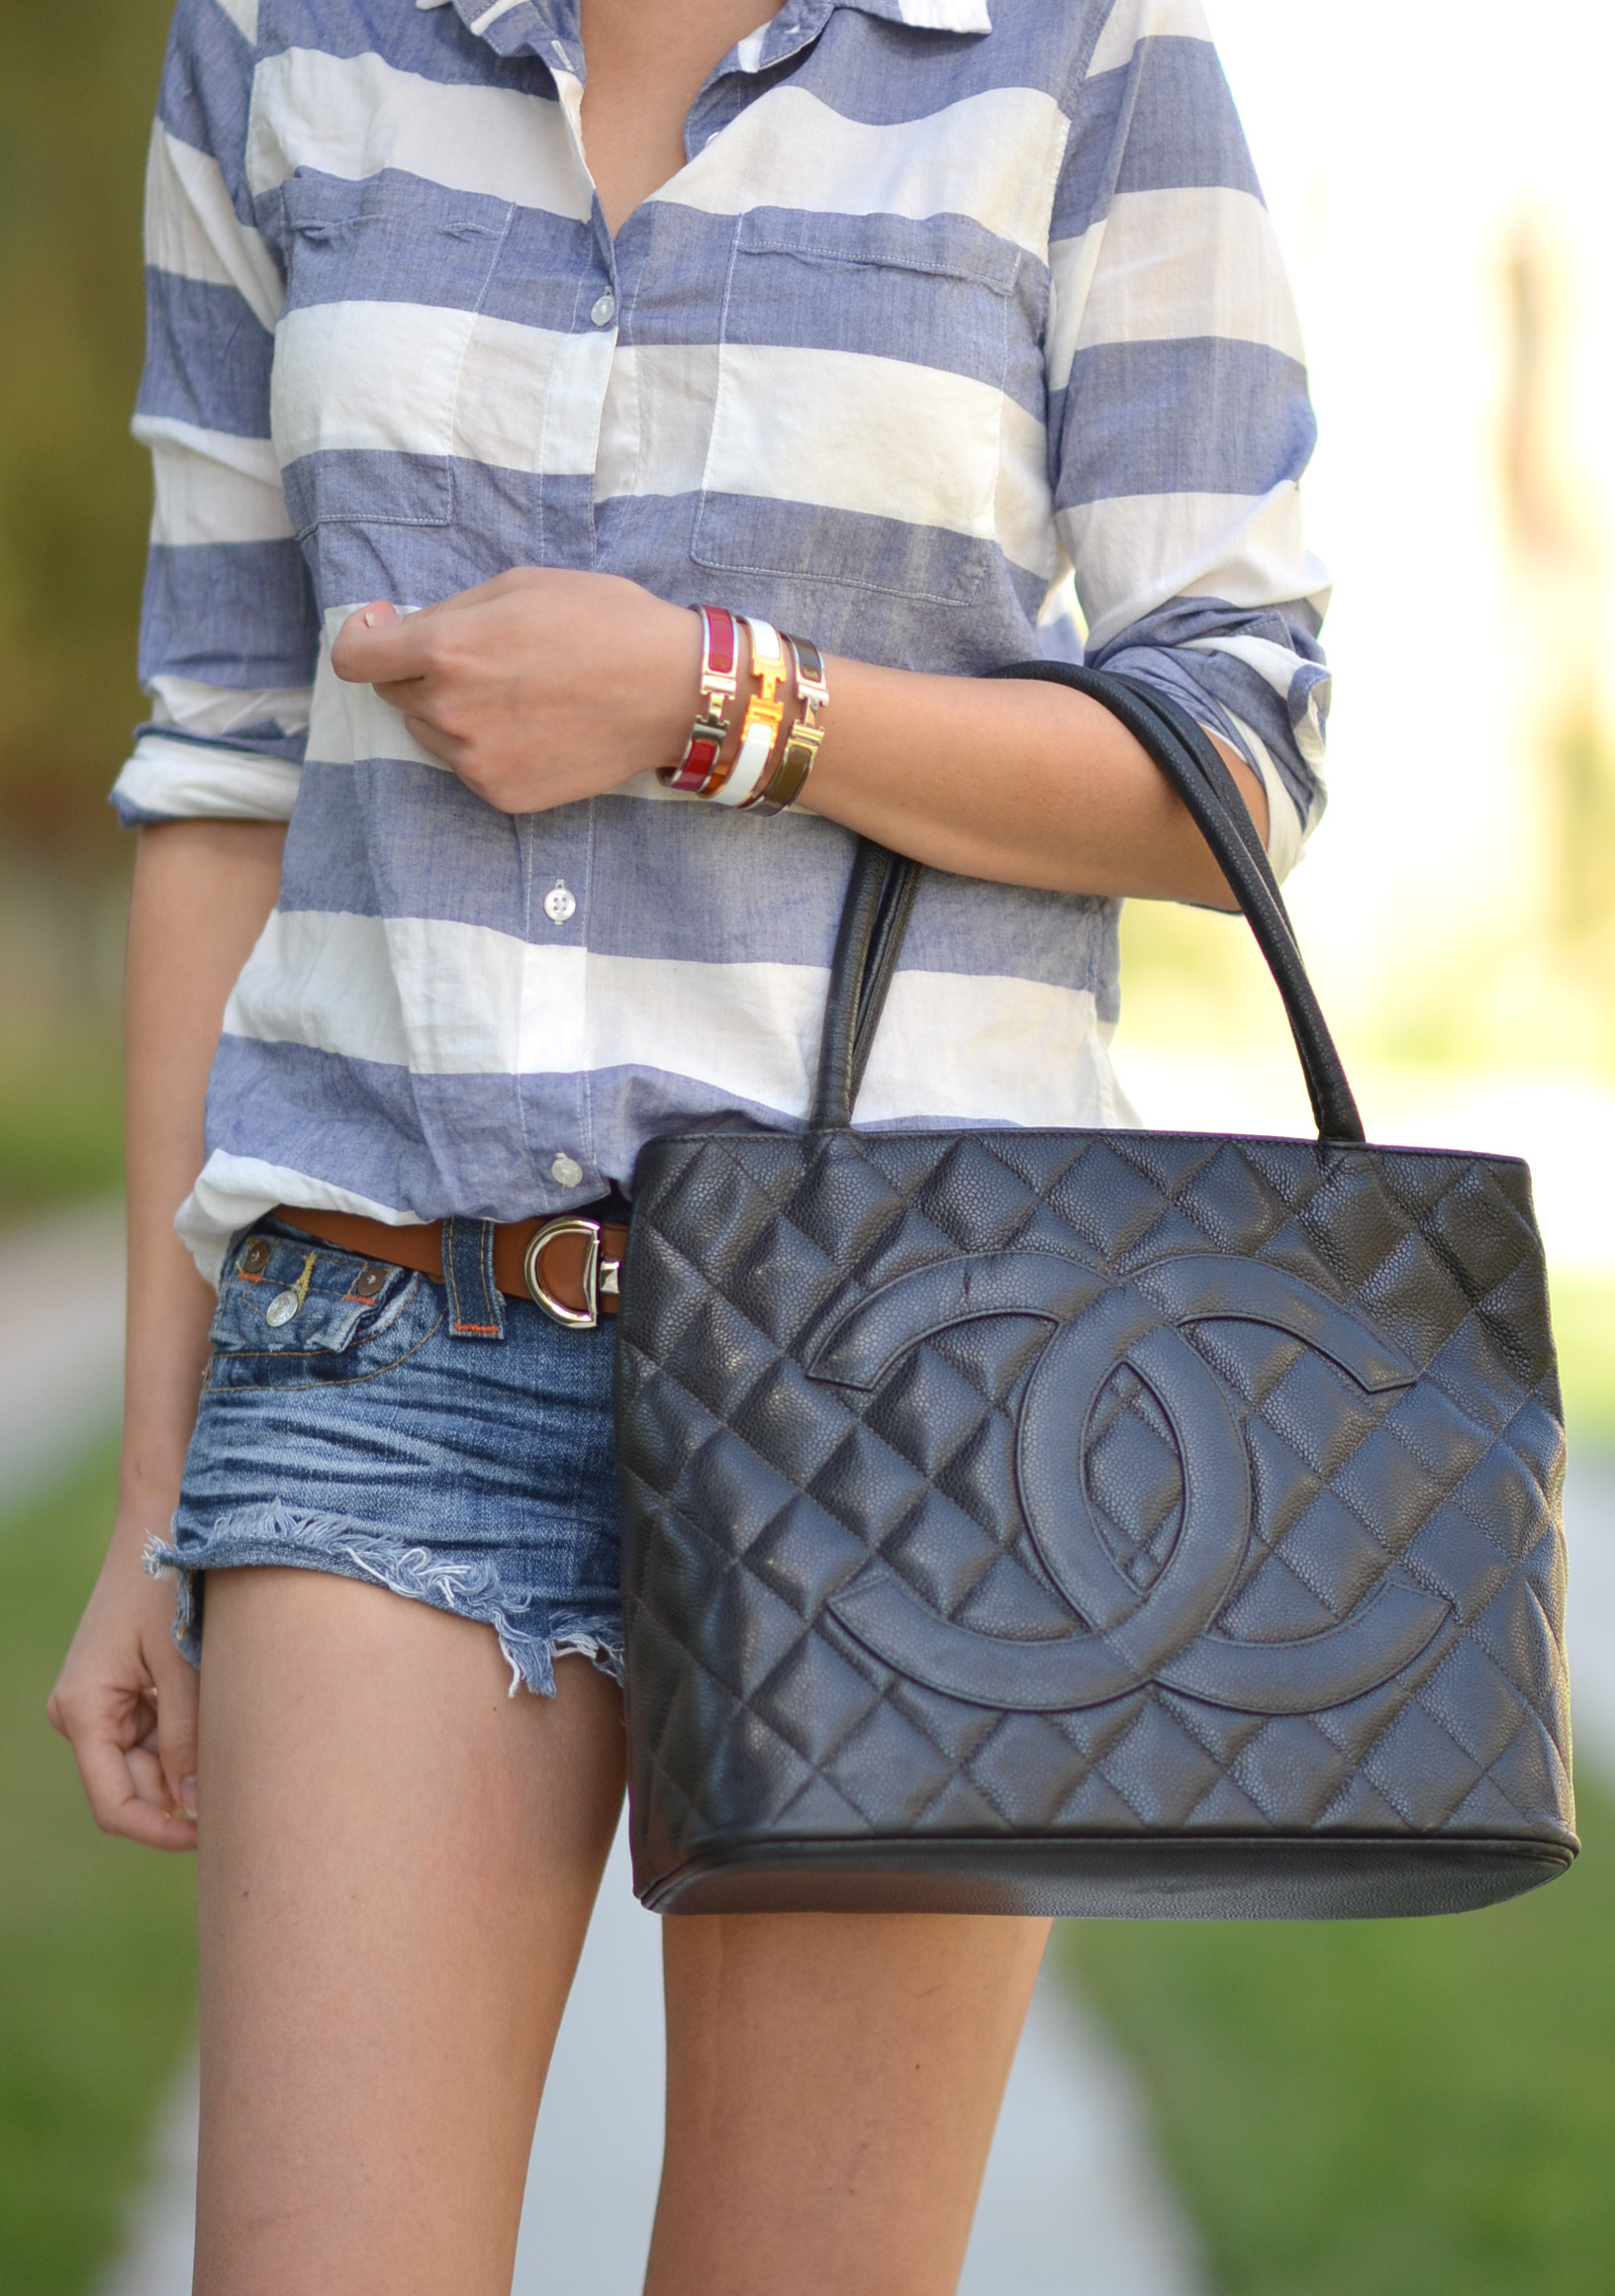 what a fits woman bag medallion chanel caviar handbag black outfit blog inside review girl in wearing person lollipuff